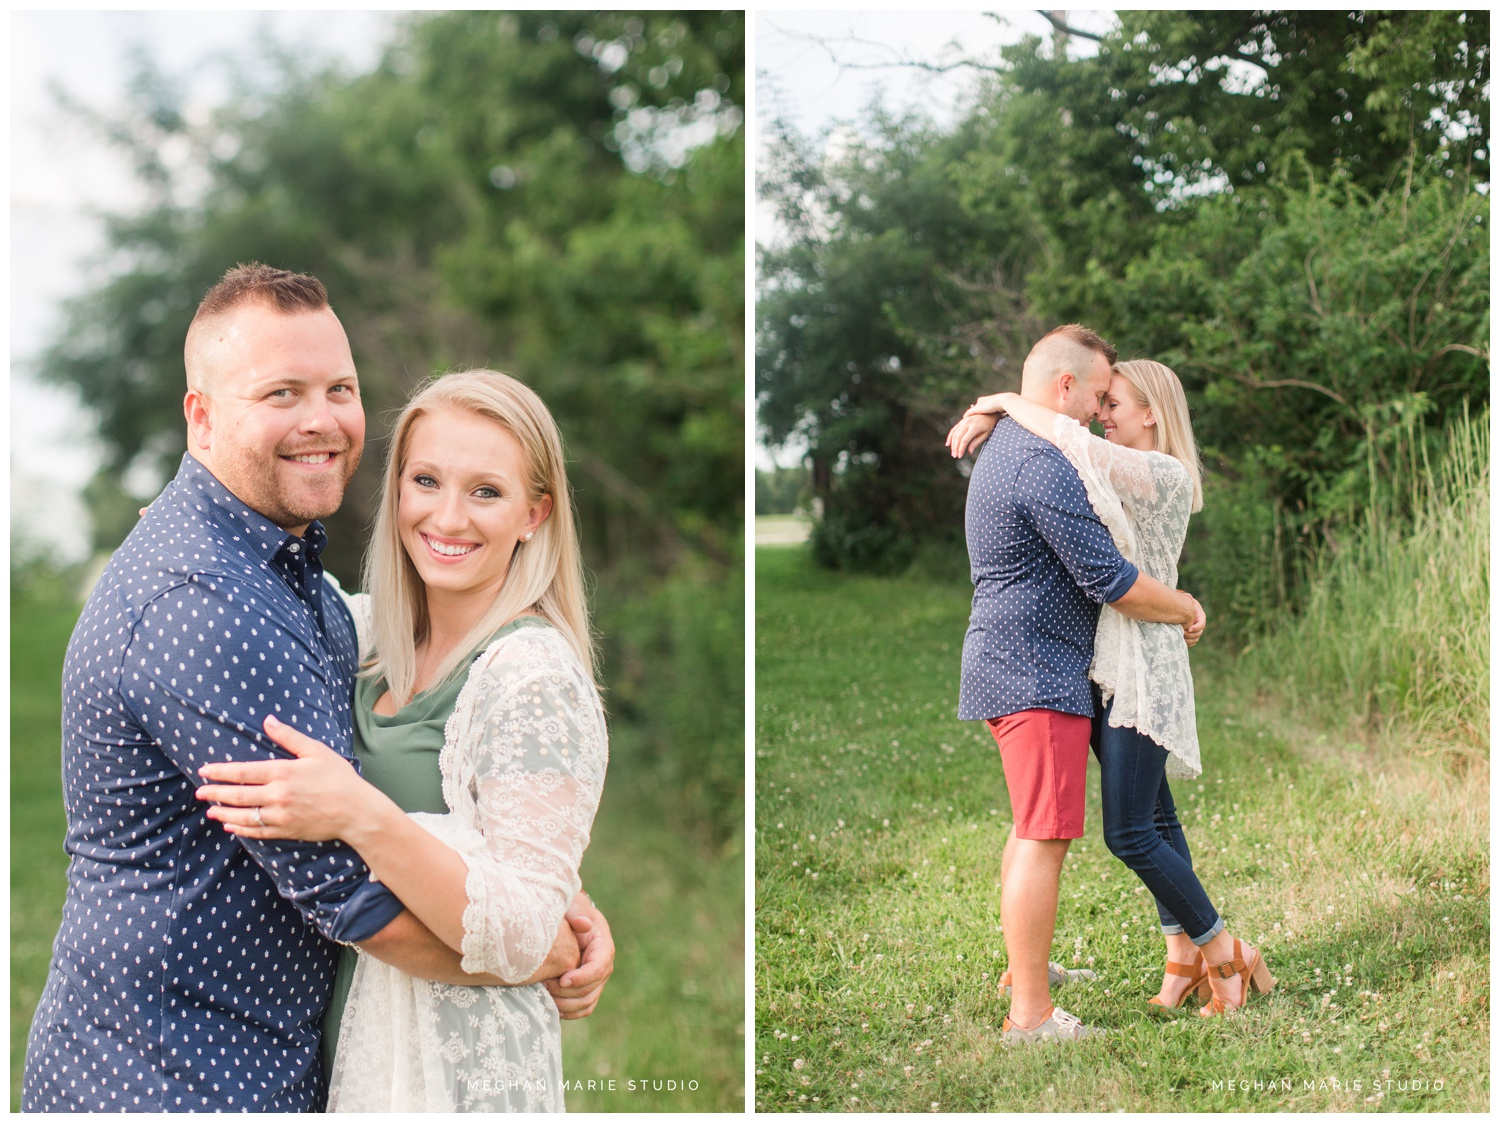 meghan marie studio ohio dayton troy photographer wedding photography engagement alex kaila family honeycreek preserve champagne downtown courthouse urban rural earth toned nature woods barn country city stone fountain elegant_0462.jpg